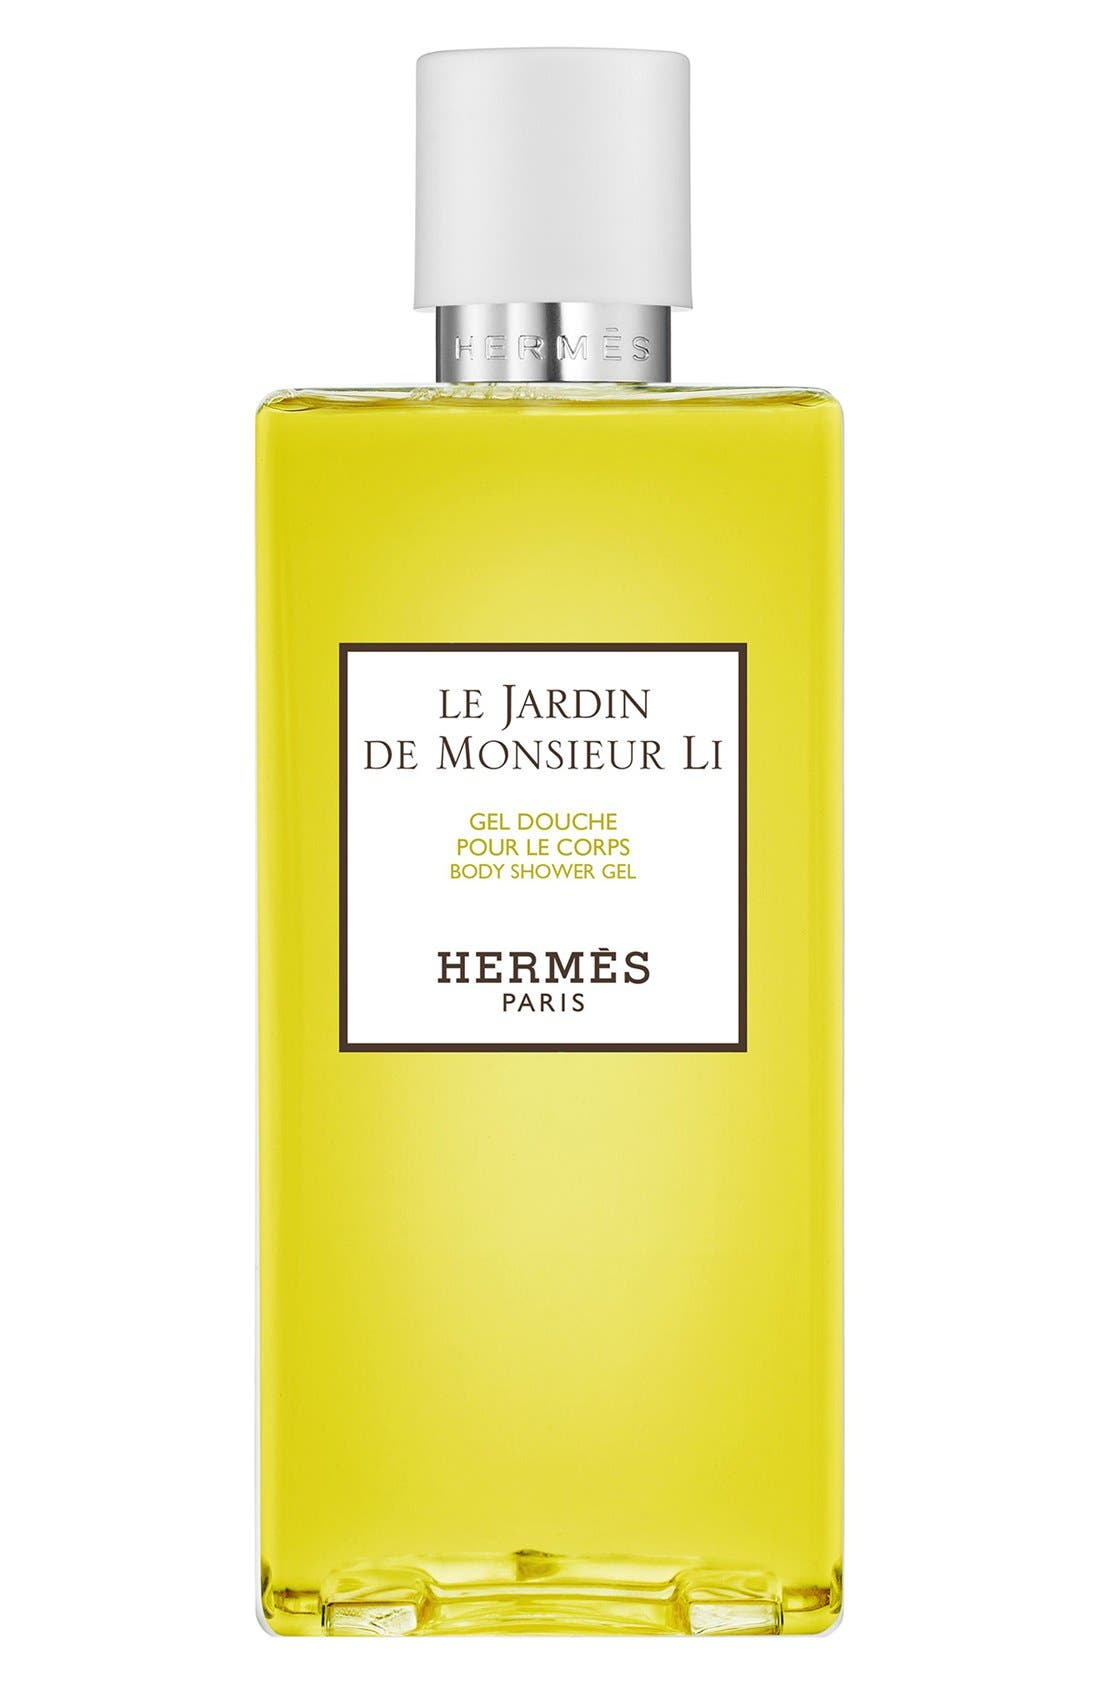 Le Jardin de Monsieur Li - Shower gel,                             Main thumbnail 1, color,                             NO COLOR